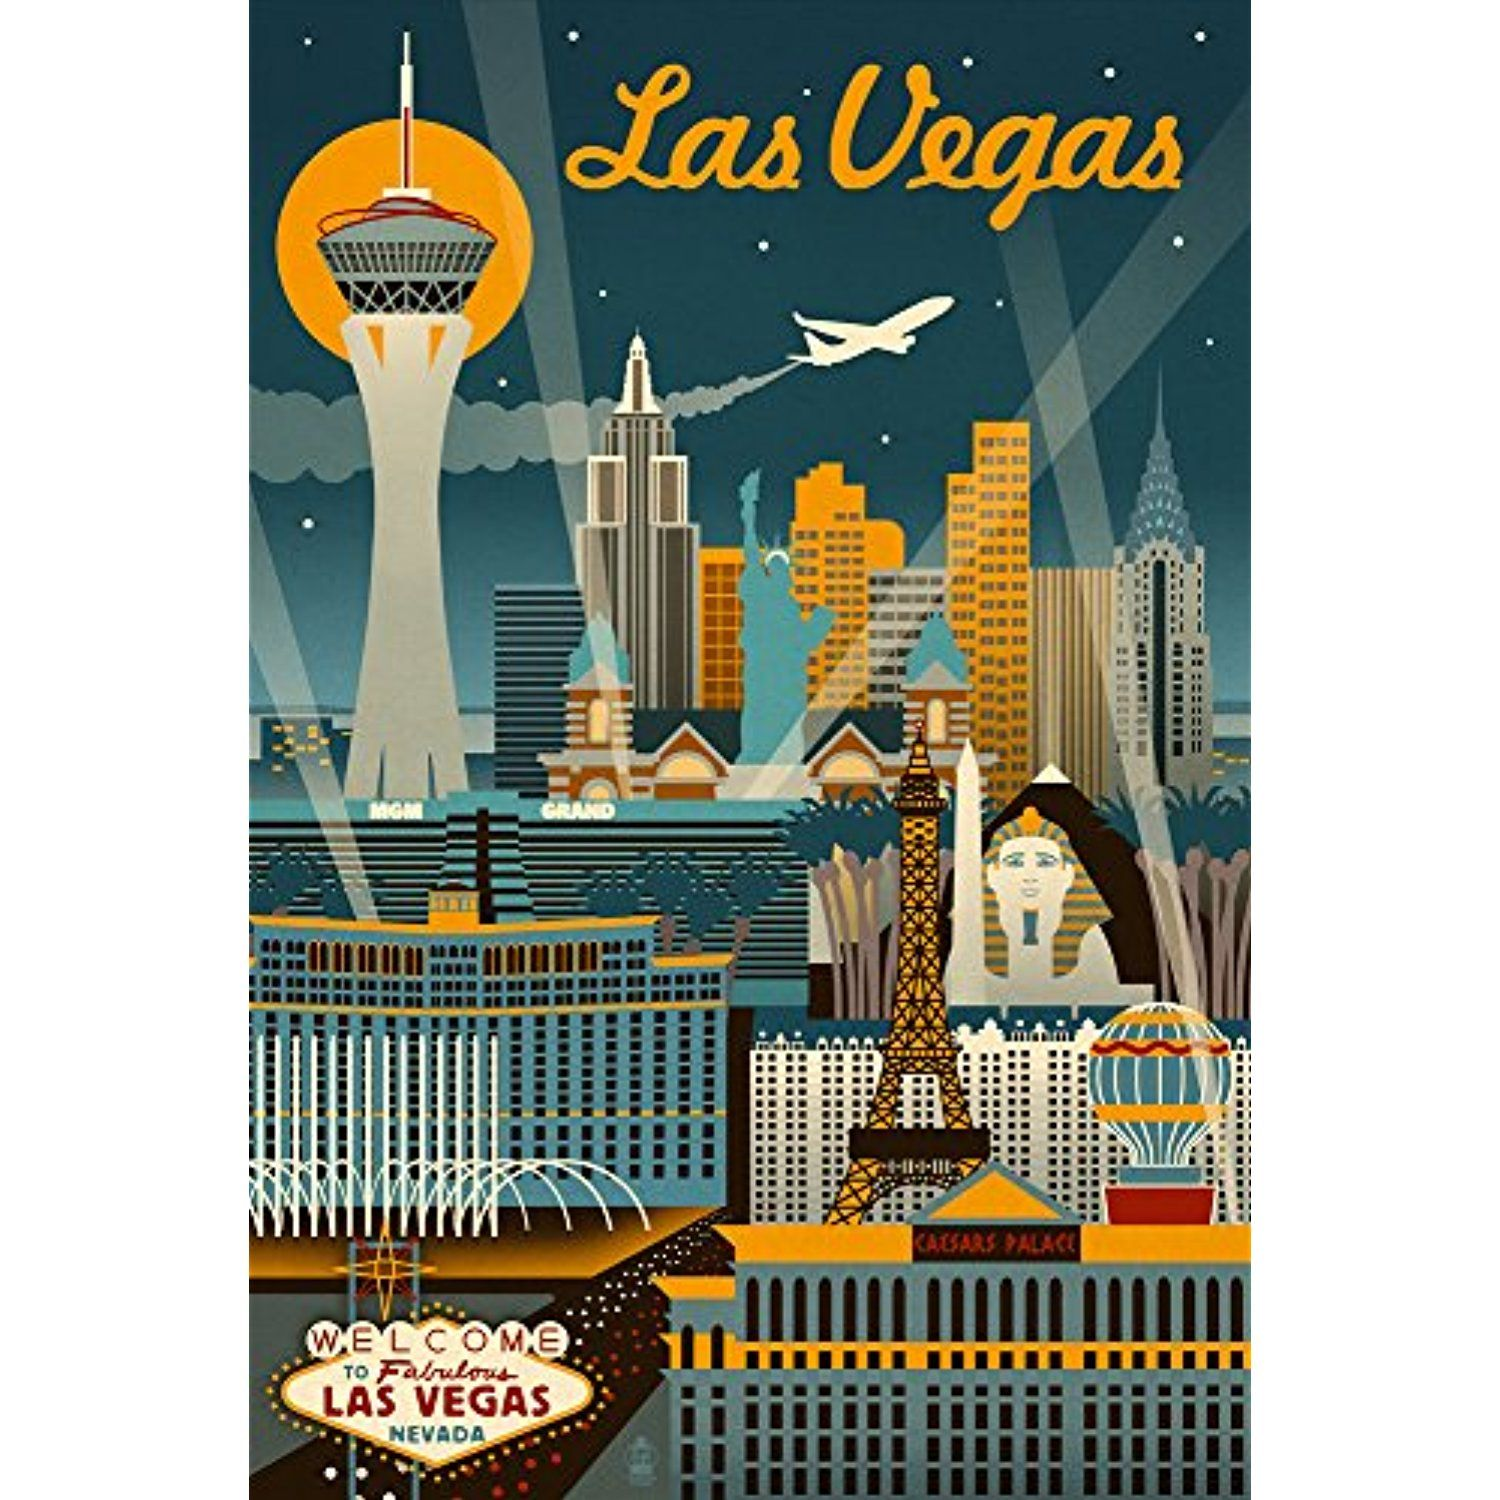 Las Vegas Nevada Retro Skyline 12x18 Signed Print Master Art Print W Certificate Of Authenticity Wall Decor Trav Las Vegas Travel Posters Vintage Travel